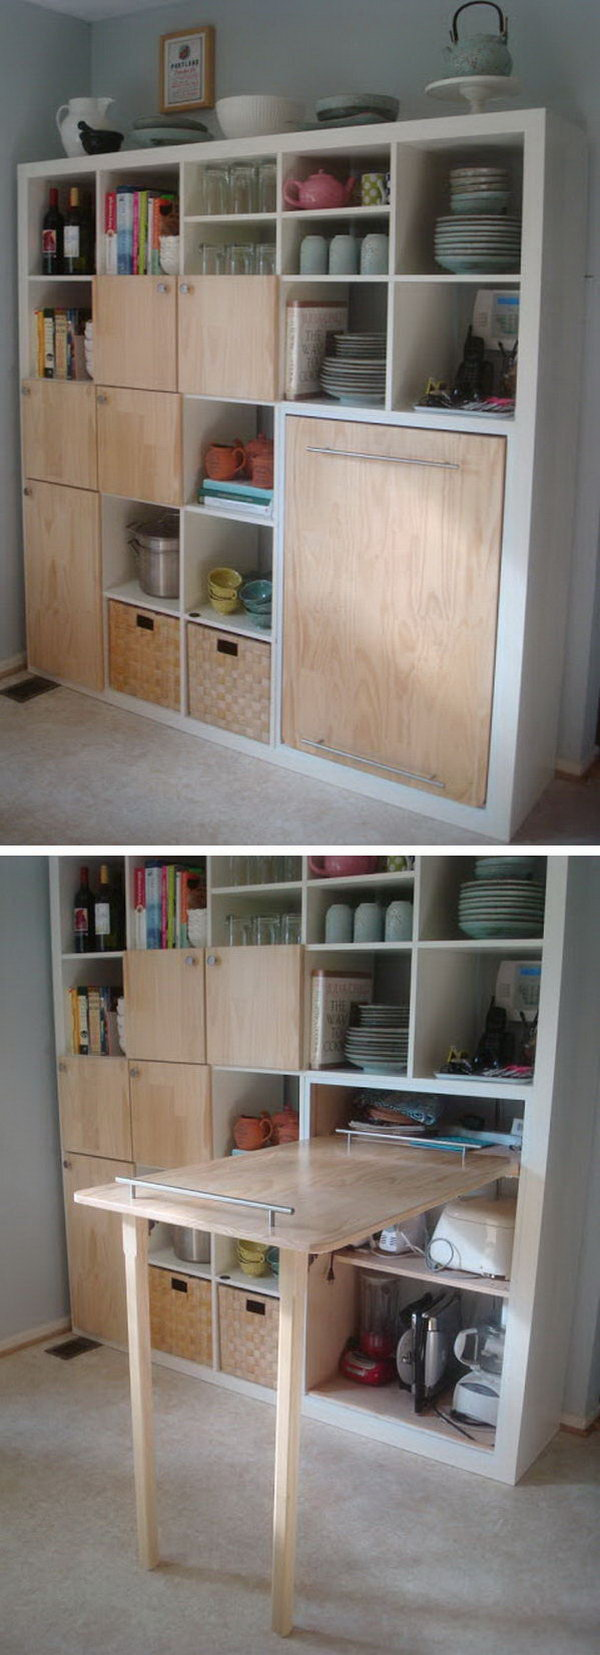 Kitchen Storage Room Clever Kitchen Storage Ideas Ideastand